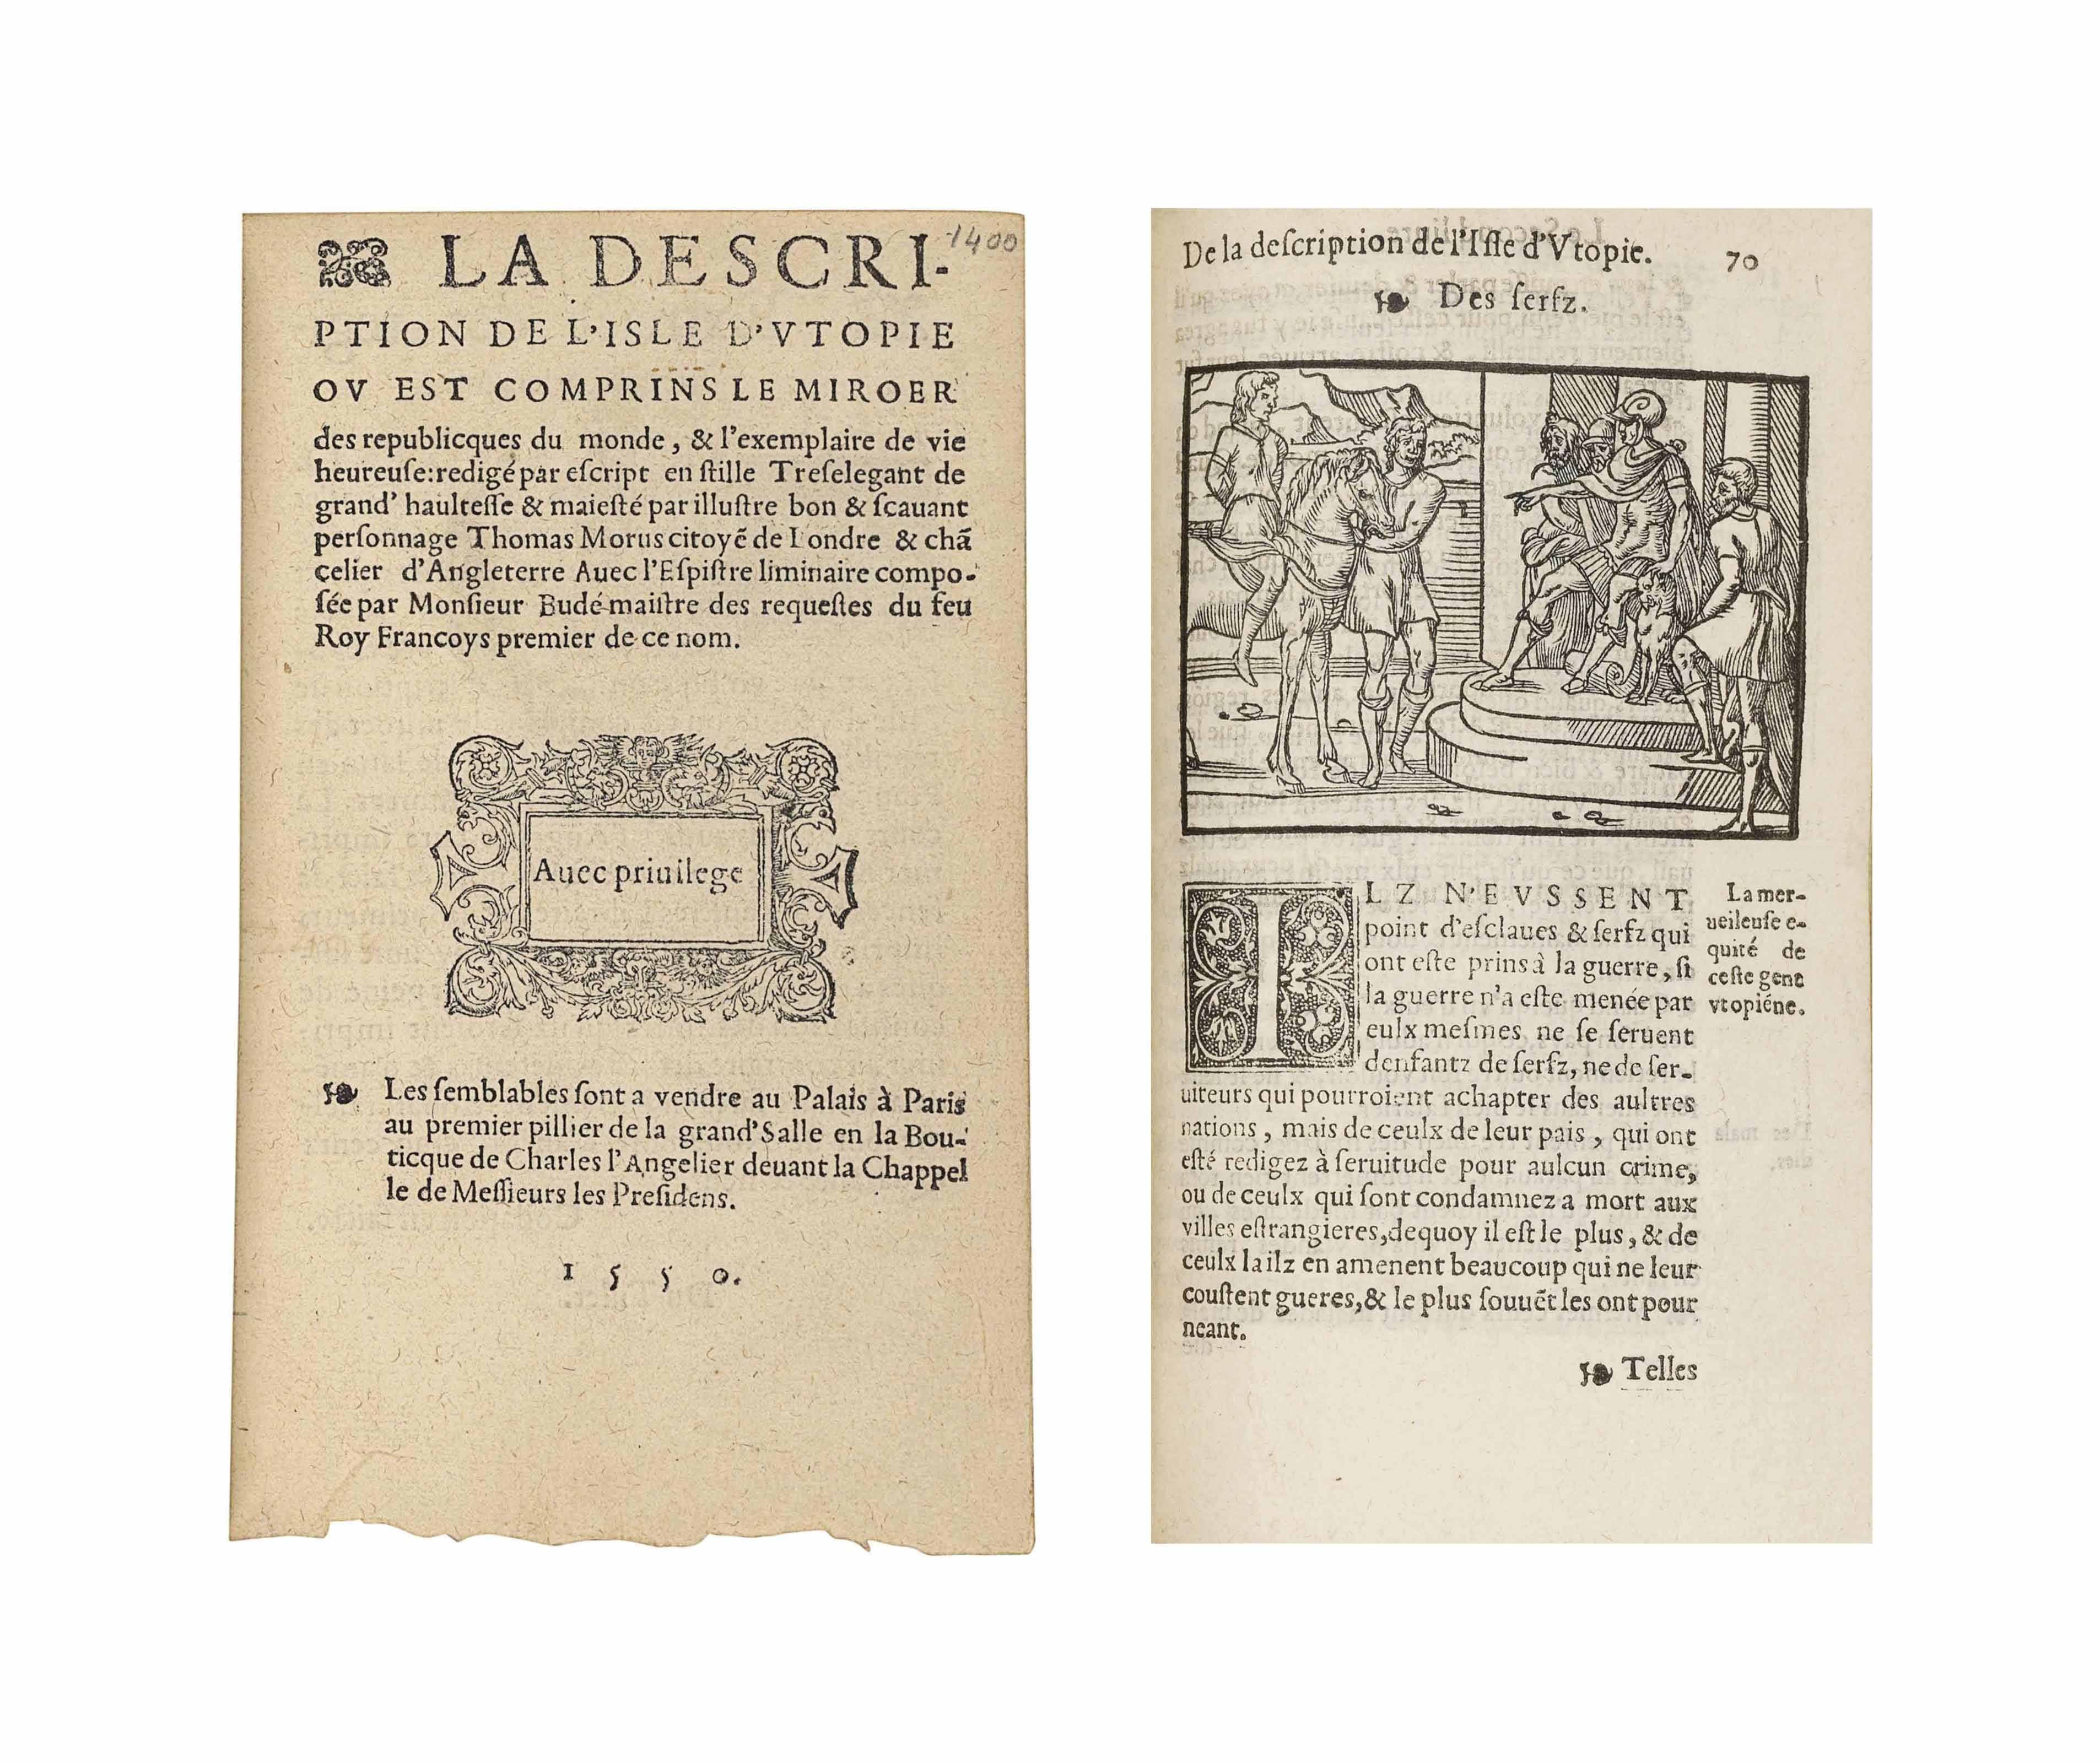 MORE, Thomas (1478-1535). La Description de l'Isle d'Utopie. Paris: Charles l'Angelier, 1550. 8° (164 x 100mm). Woodcut devices on title and final leaf, 12 woodcuts, woodcut initials. Red morocco gilt by Thibaron-Joly, gilt lozenge on sides made up of small tools, spine compartments directly lettered and with repeated fleuron, gilt turn-ins and edges. Provenance: purchased from Ch. Bosse, 1924.